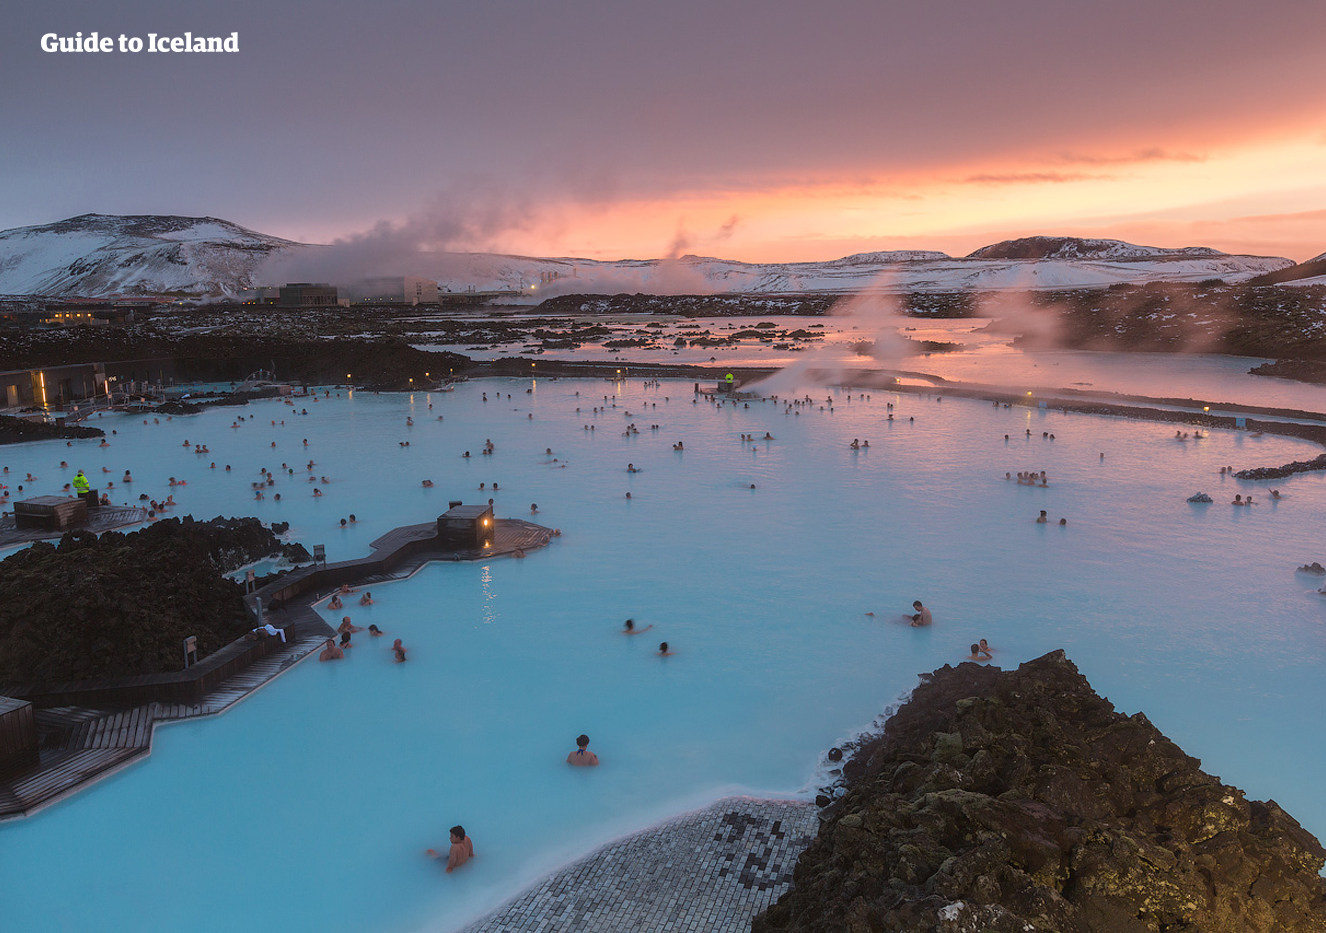 9 Day Summer Self Drive Tour of the Complete Ring Road of Iceland with a Focus on the South Coast - day 1